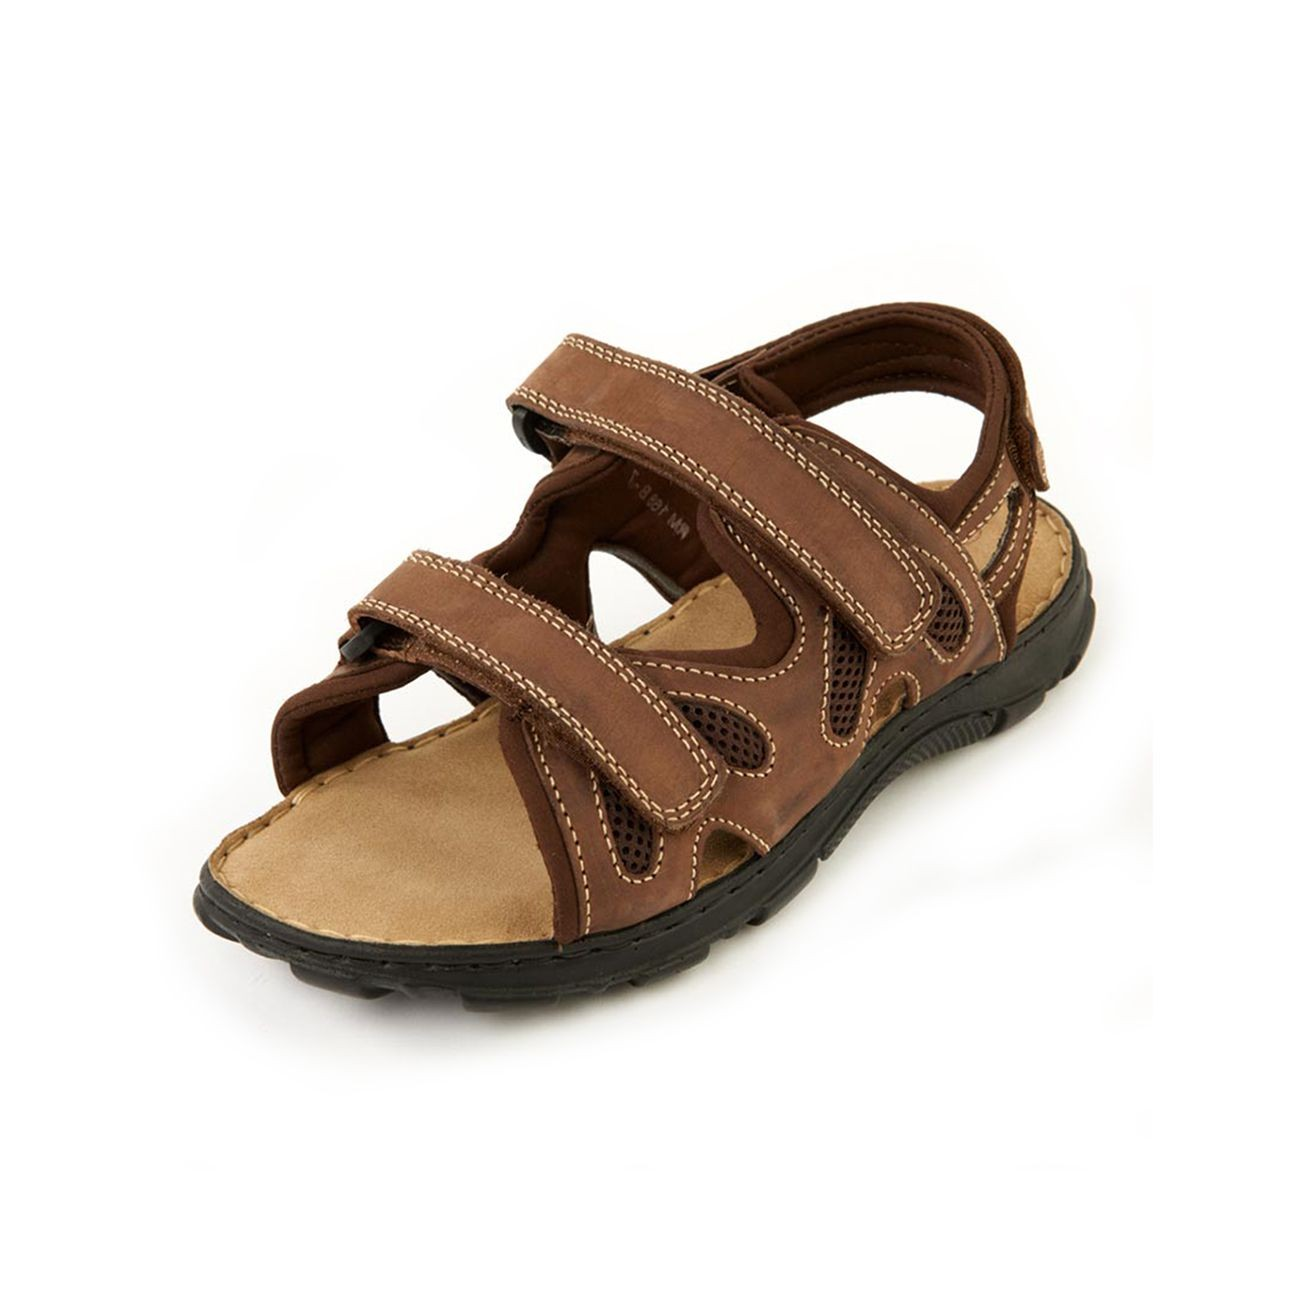 Neil Roomy Sandal and men's wider fitting sandals